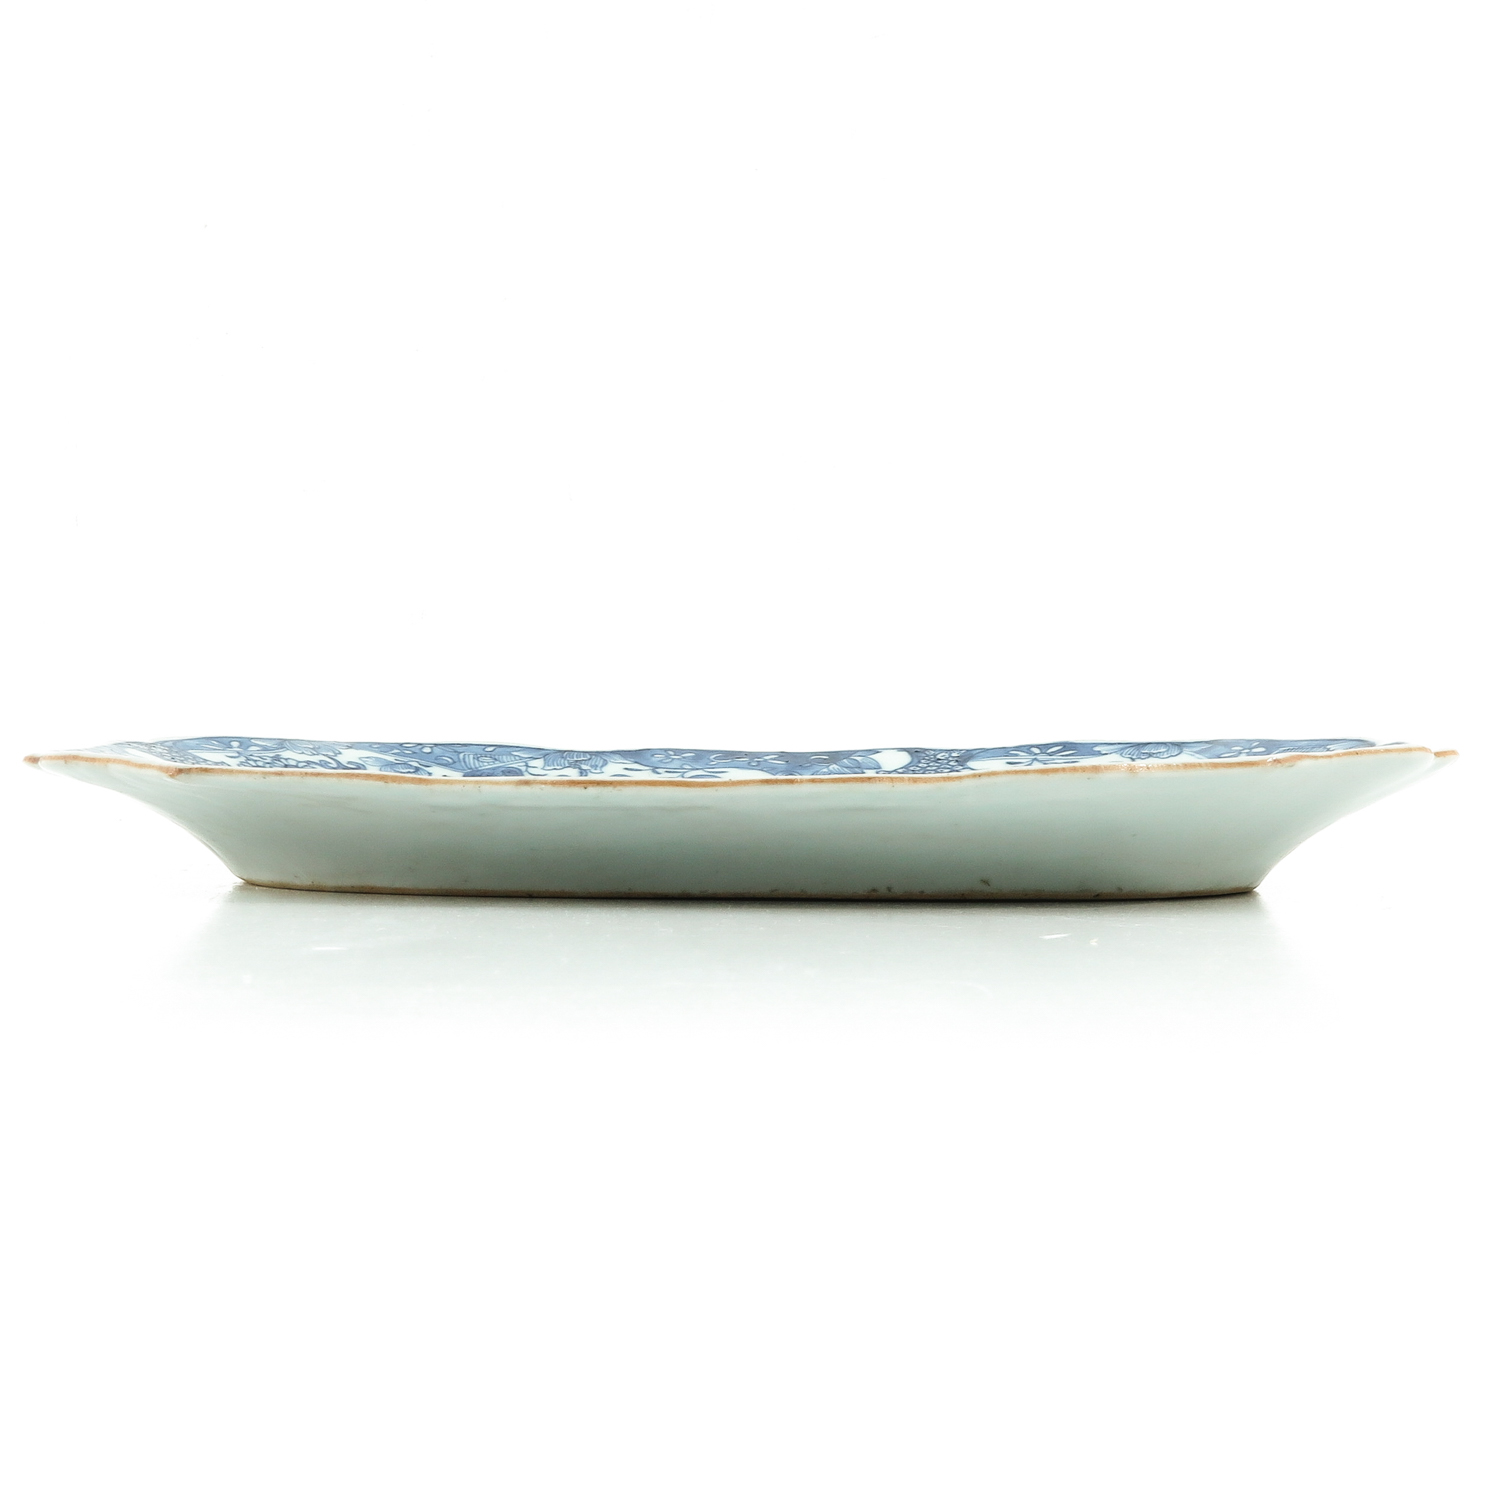 A Blue and White Serving Dish - Image 4 of 7